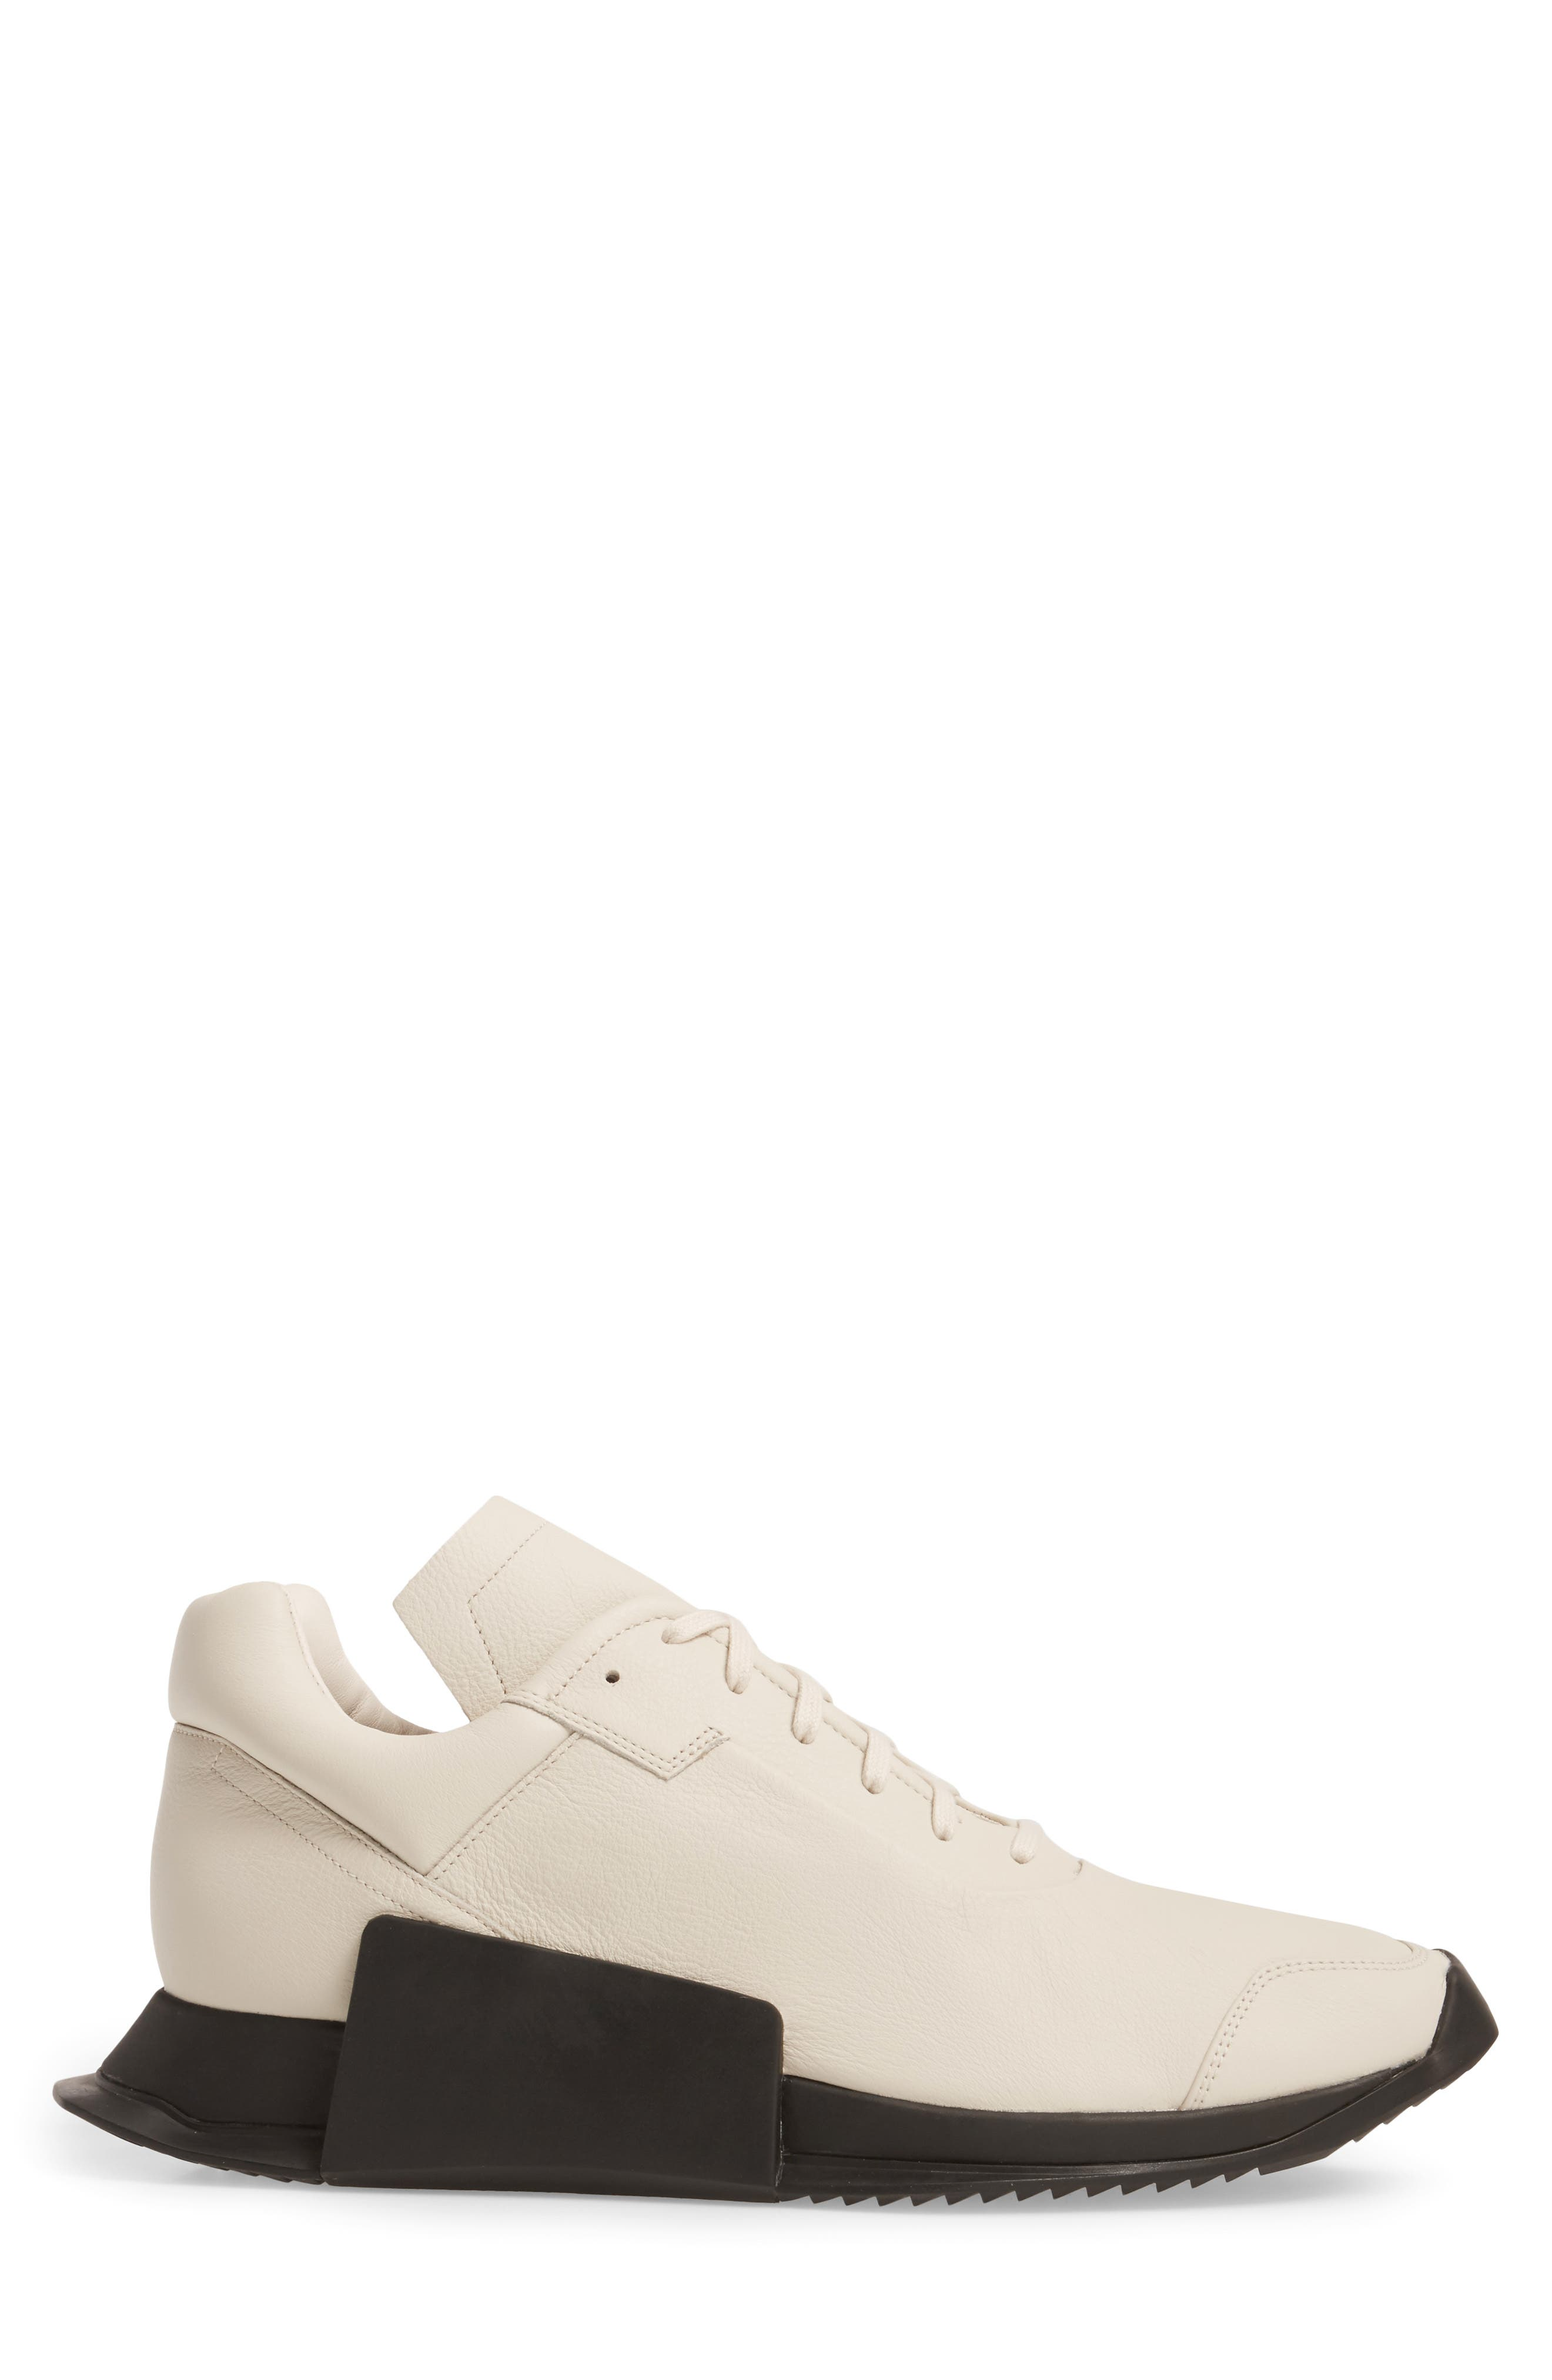 Alternate Image 3  - Rick Owens by adidas New Runner Boost Sneaker (Men)